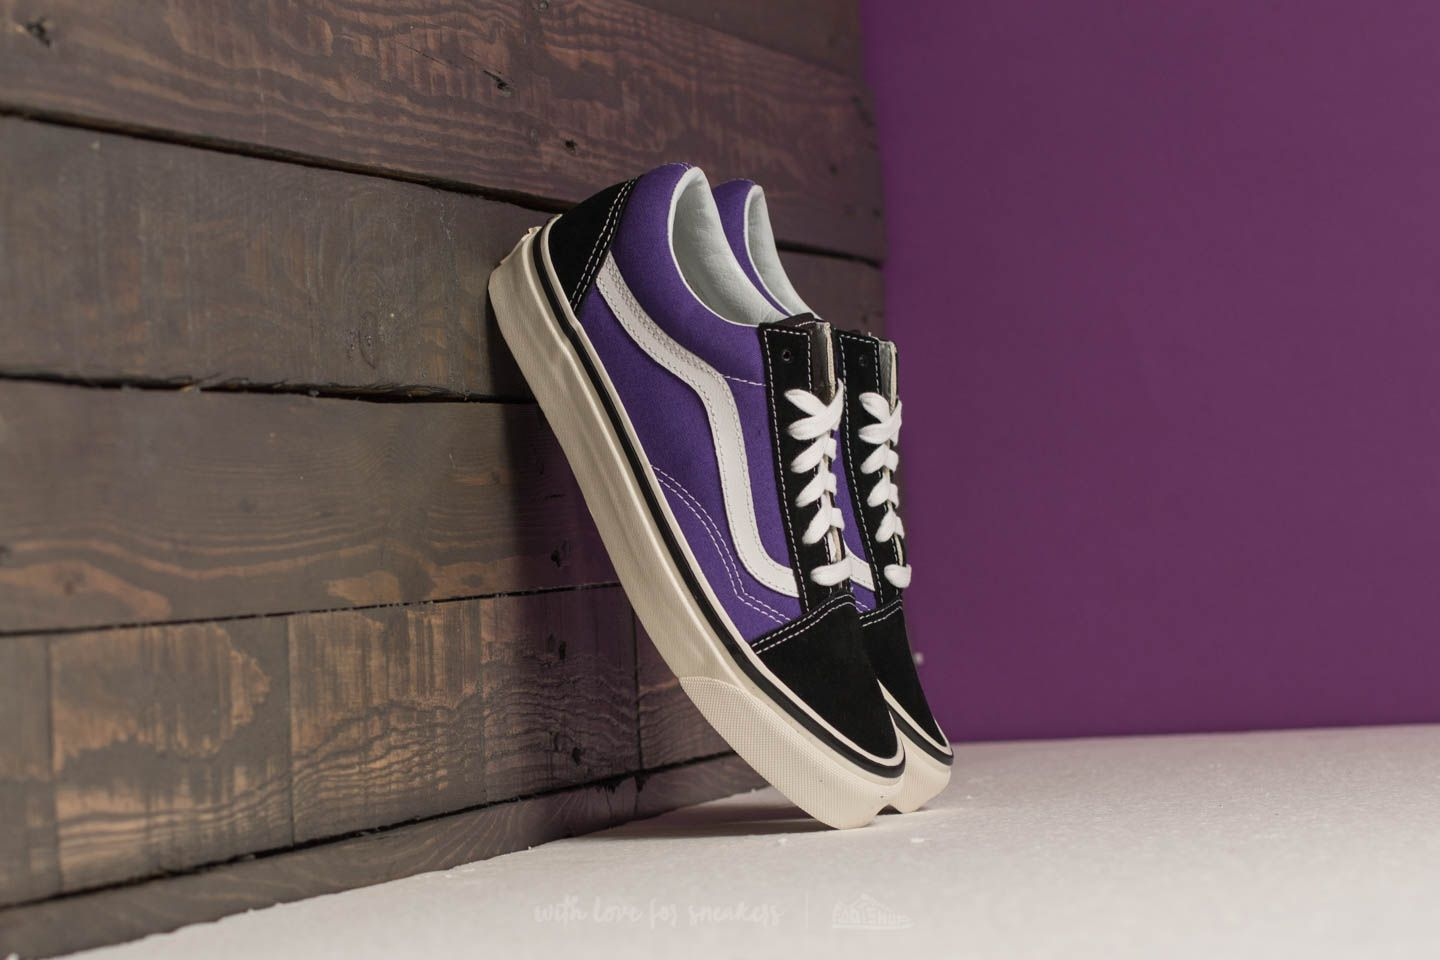 Vans Old Skool 36 DX (Anaheim Factory) Black  Bright Purple  45d6dfa9be